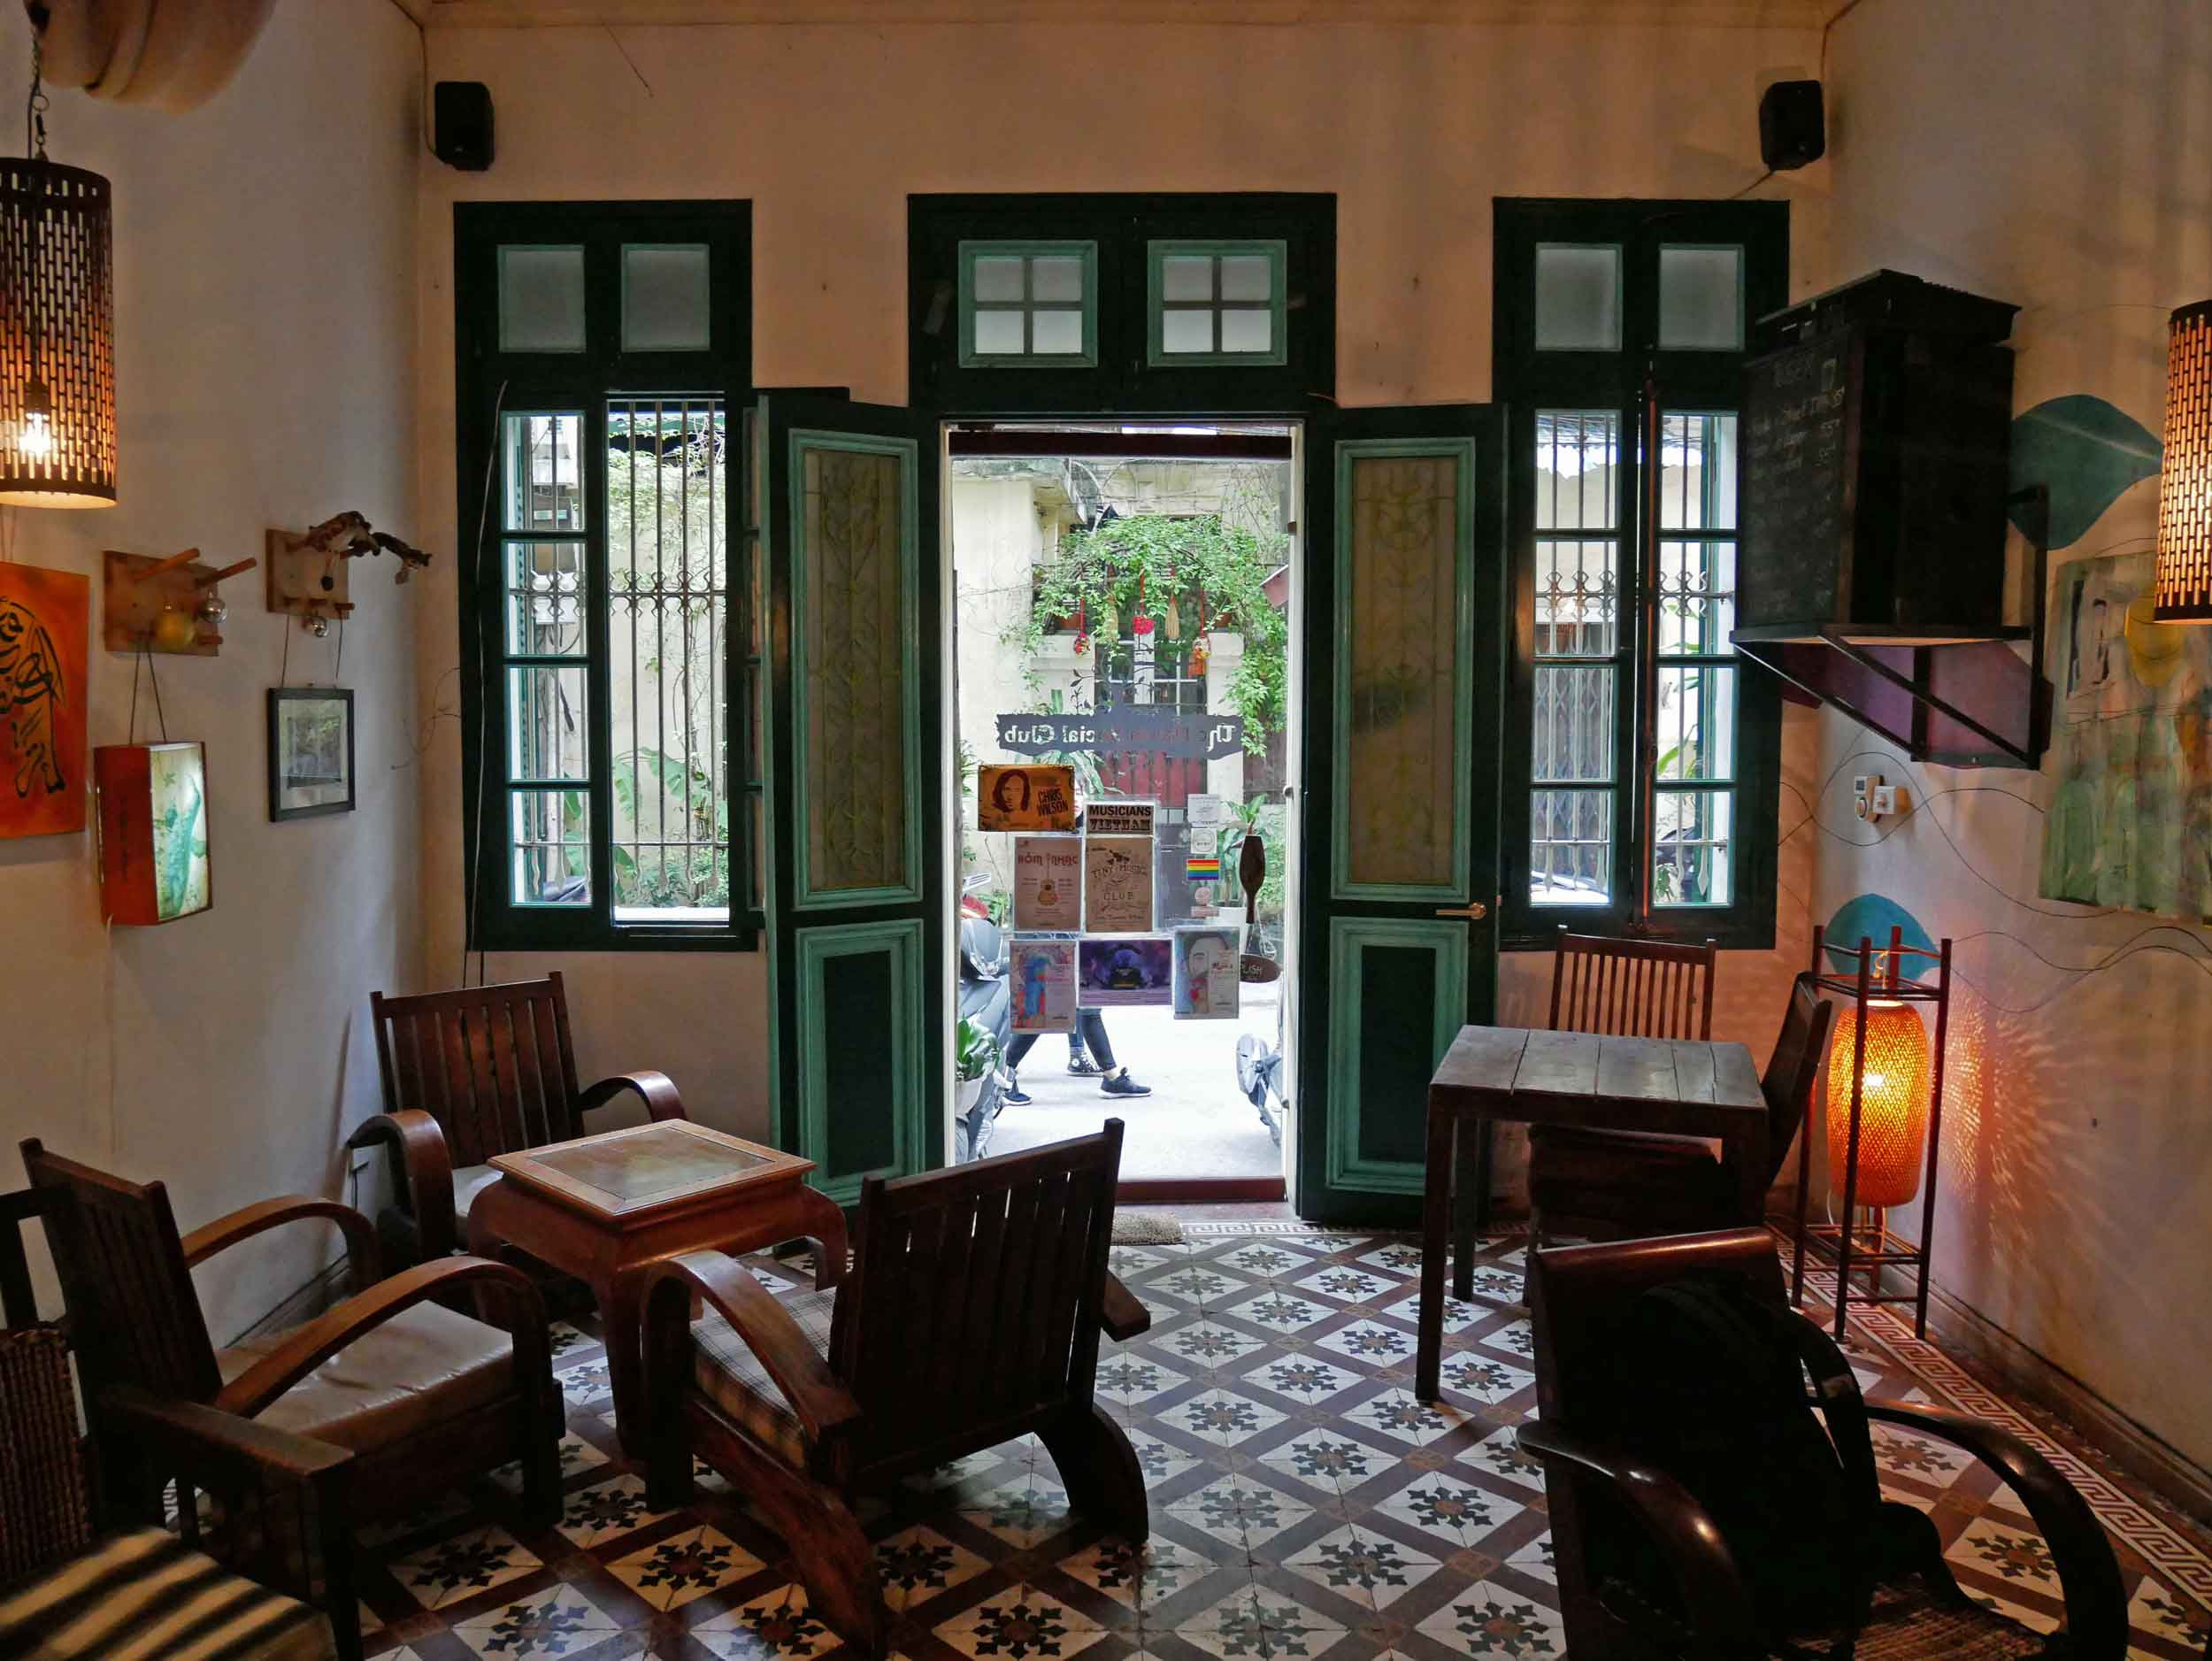 We found respite from the chaotic streets at Hanoi Social Club, a multi-story coffeehouse and performance space in the Old Quarter.